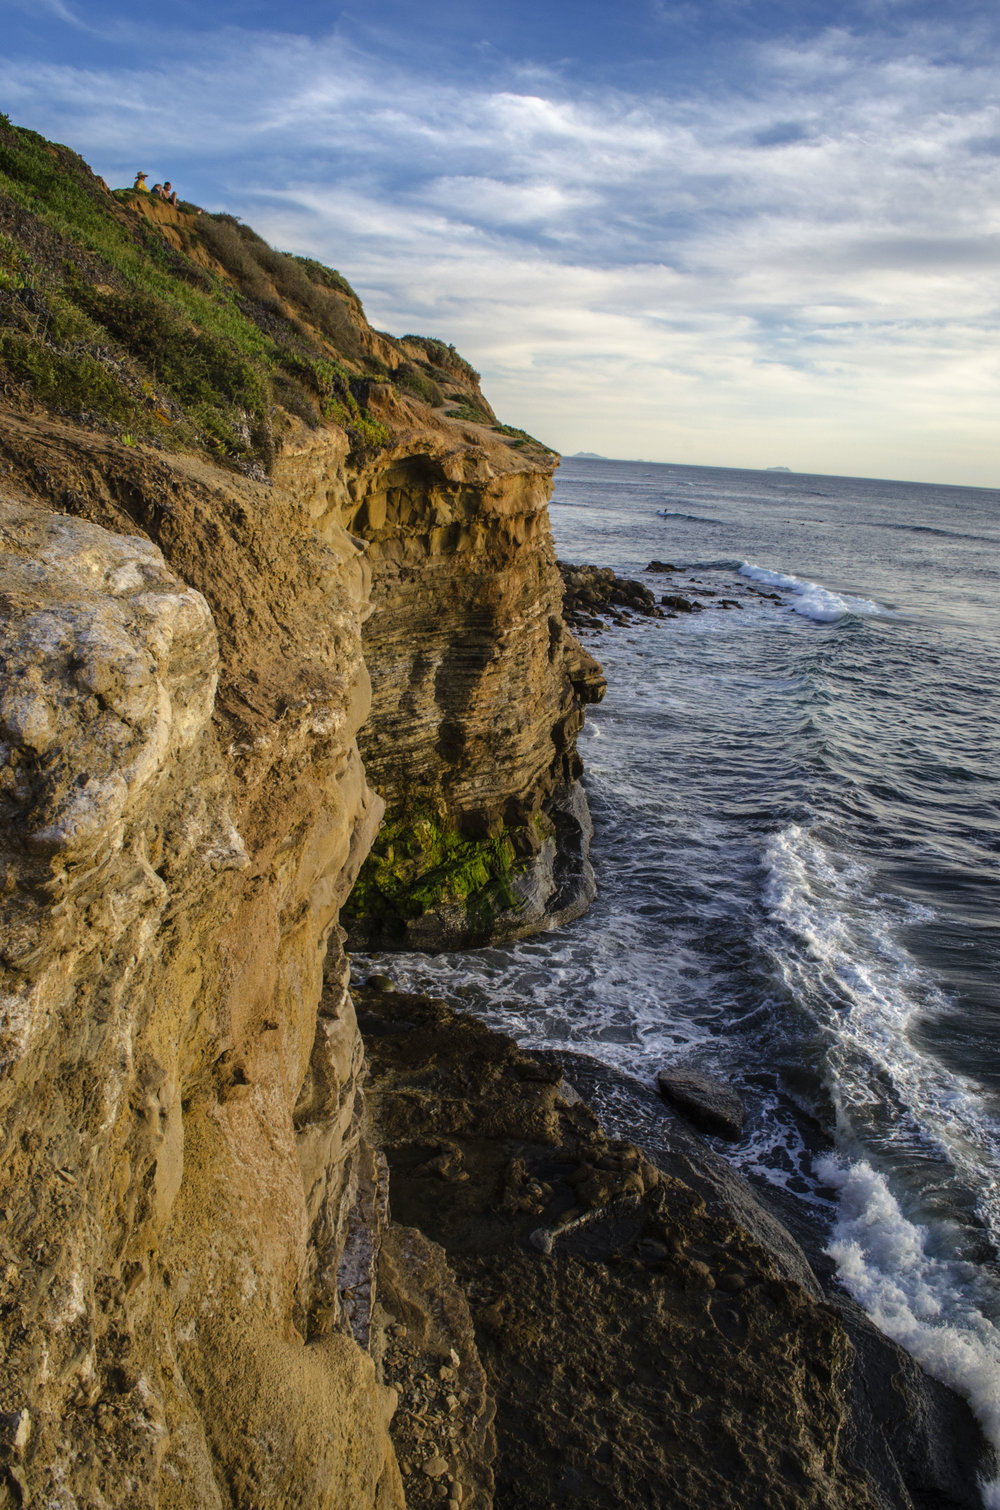 sunset-cliffs_16874798712_o.jpg